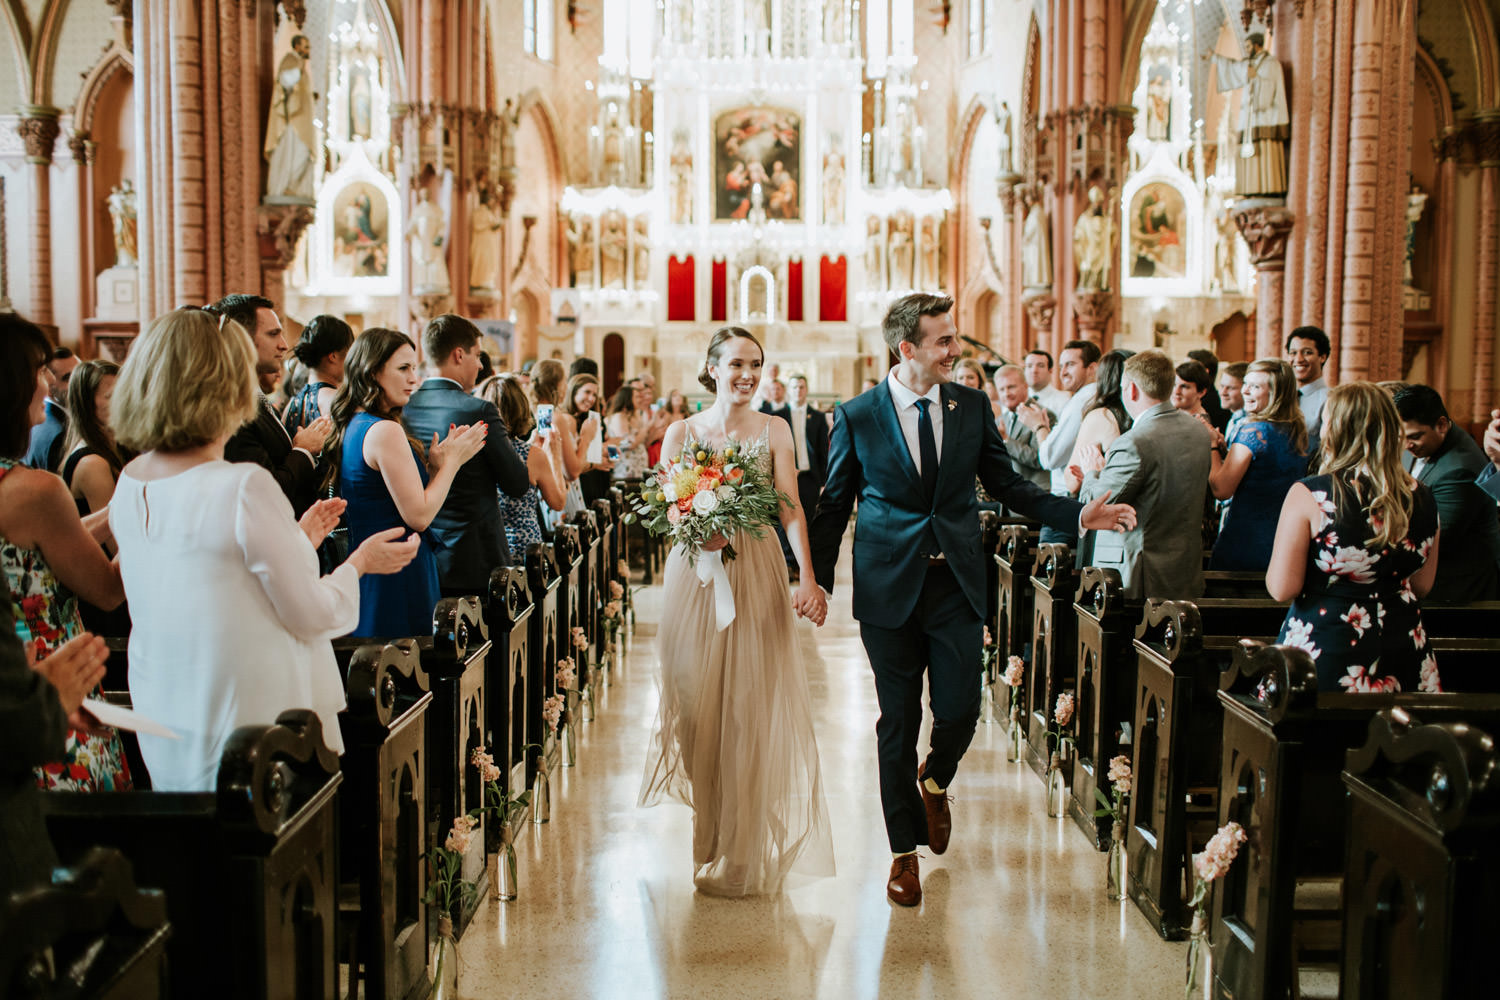 Bride and groom walk out the church after the wedding ceremony at Holy Family Catholic Church